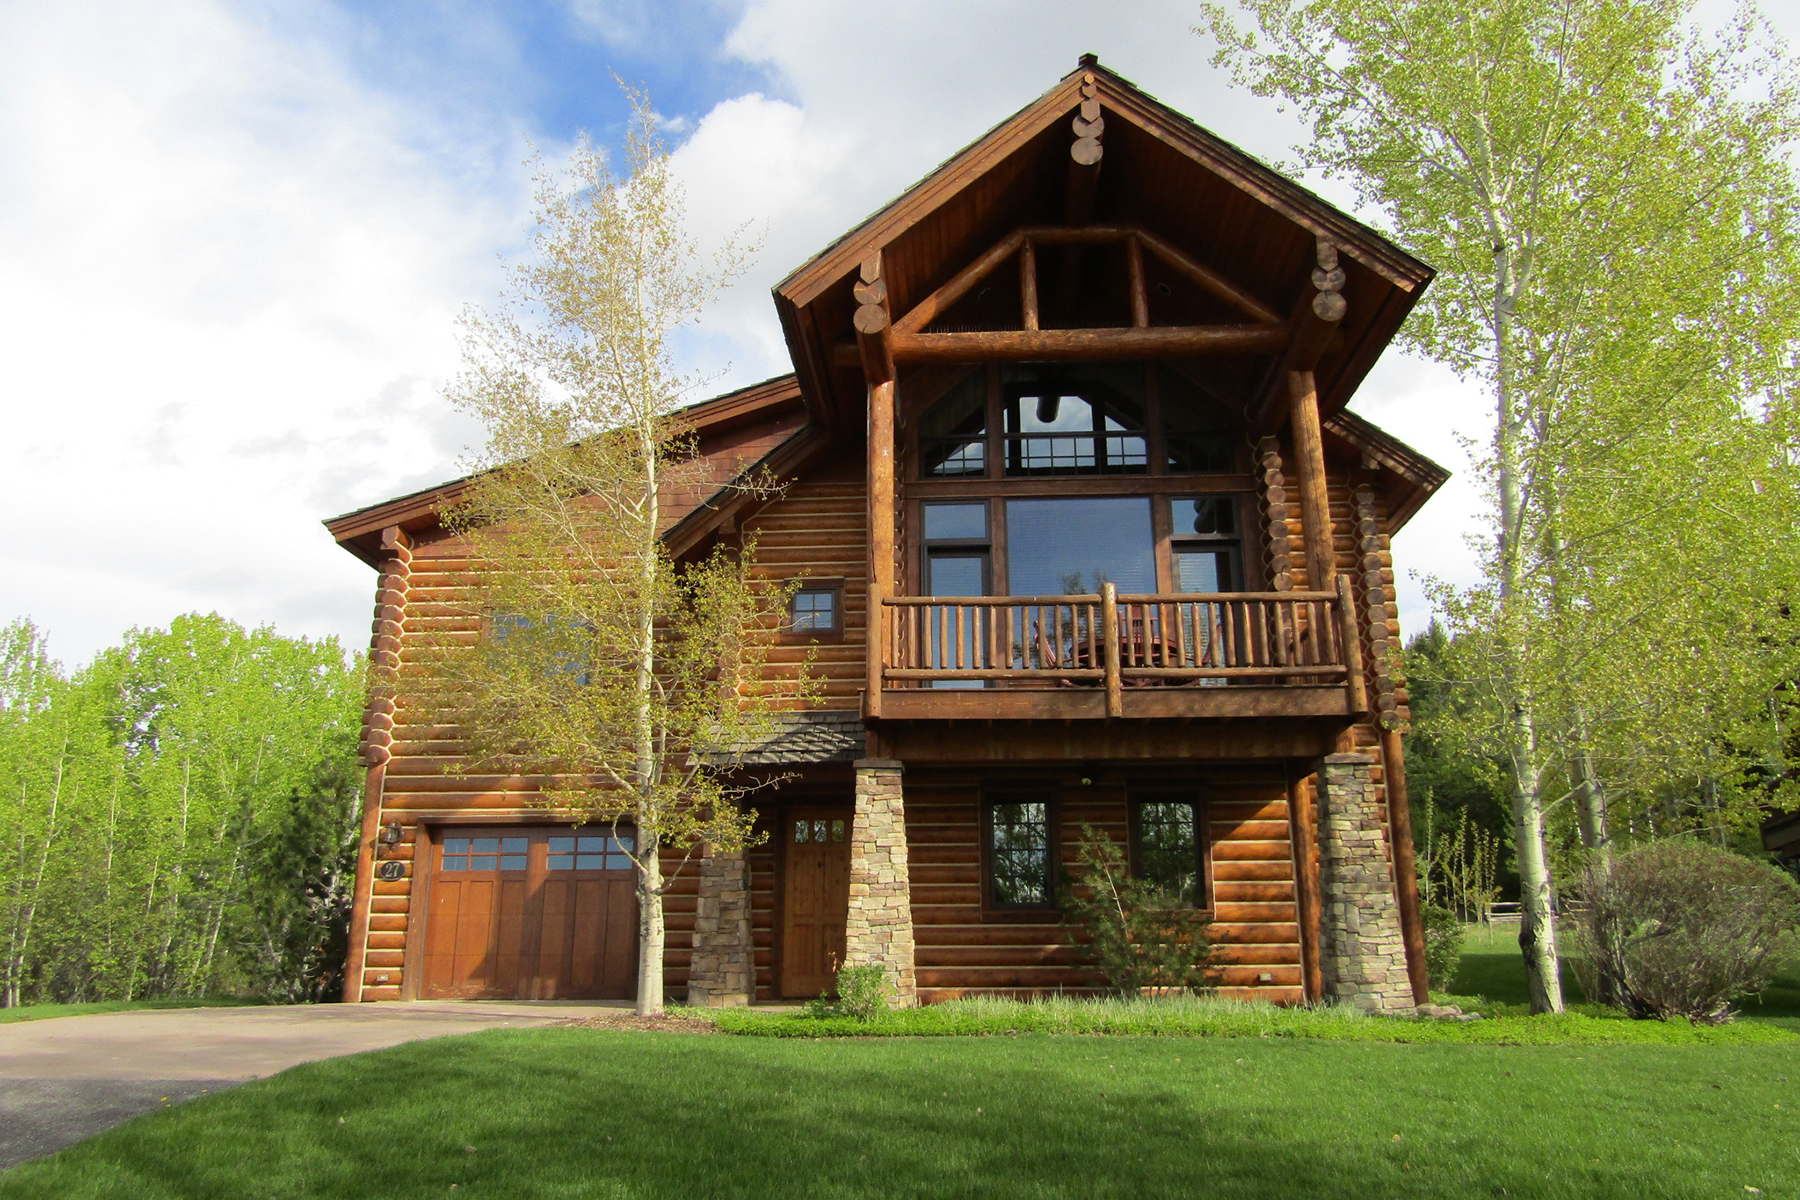 Single Family Homes for Active at Teton Springs Cabin - Full Membership 27 Bannock Circle Victor, Idaho 83455 United States